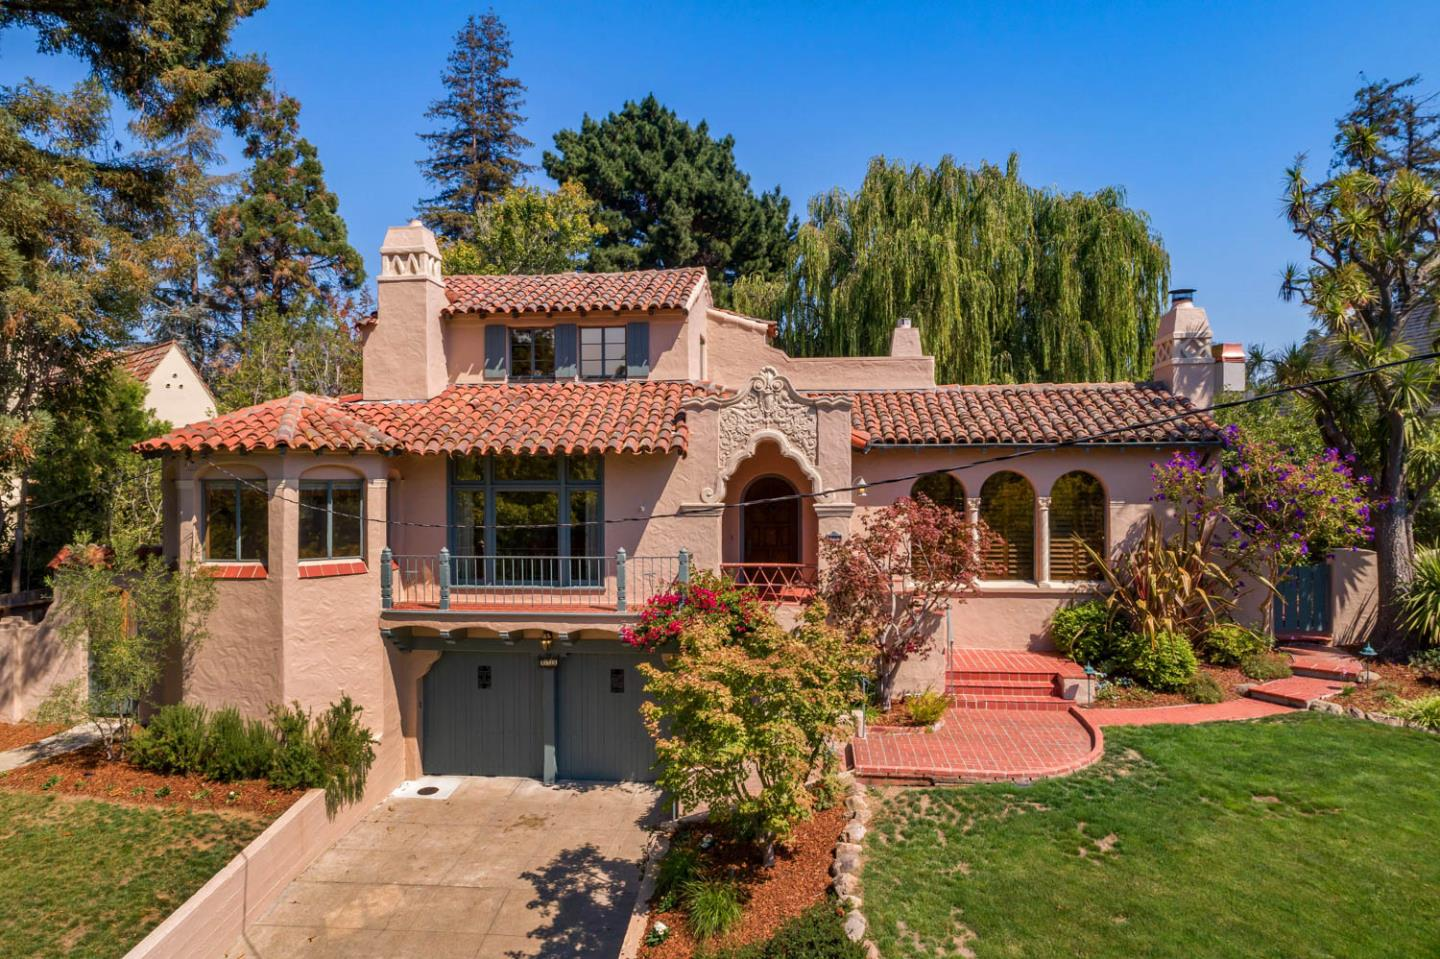 Spanish Architectural Gem in San Mateo Park! Ideally located in San Mateo's most prestigious neighborhood, San Mateo Park, this home presents time-honored Spanish architecture on a large lot. Lovingly owned by the same family for the past 57 years, the home is filled with of-the-era appointments, including light fixtures designed for the home, graceful arches on windows and room openings, hewn beamed ceilings, and vintage tile appointments. The expansive formal rooms are delightfully balanced by a breakfast room and large kitchen. There are 5 bedrooms and 3 full baths arranged across three graceful levels. Outside, a large, level rear yard dotted with fruit trees and a signature willow tree offers ample space for fresh-air living. With a premier location midway between San Francisco and Silicon Valley, plus the option to enjoy today or renovate, this is indeed a very special opportunity for yet another generation to come.